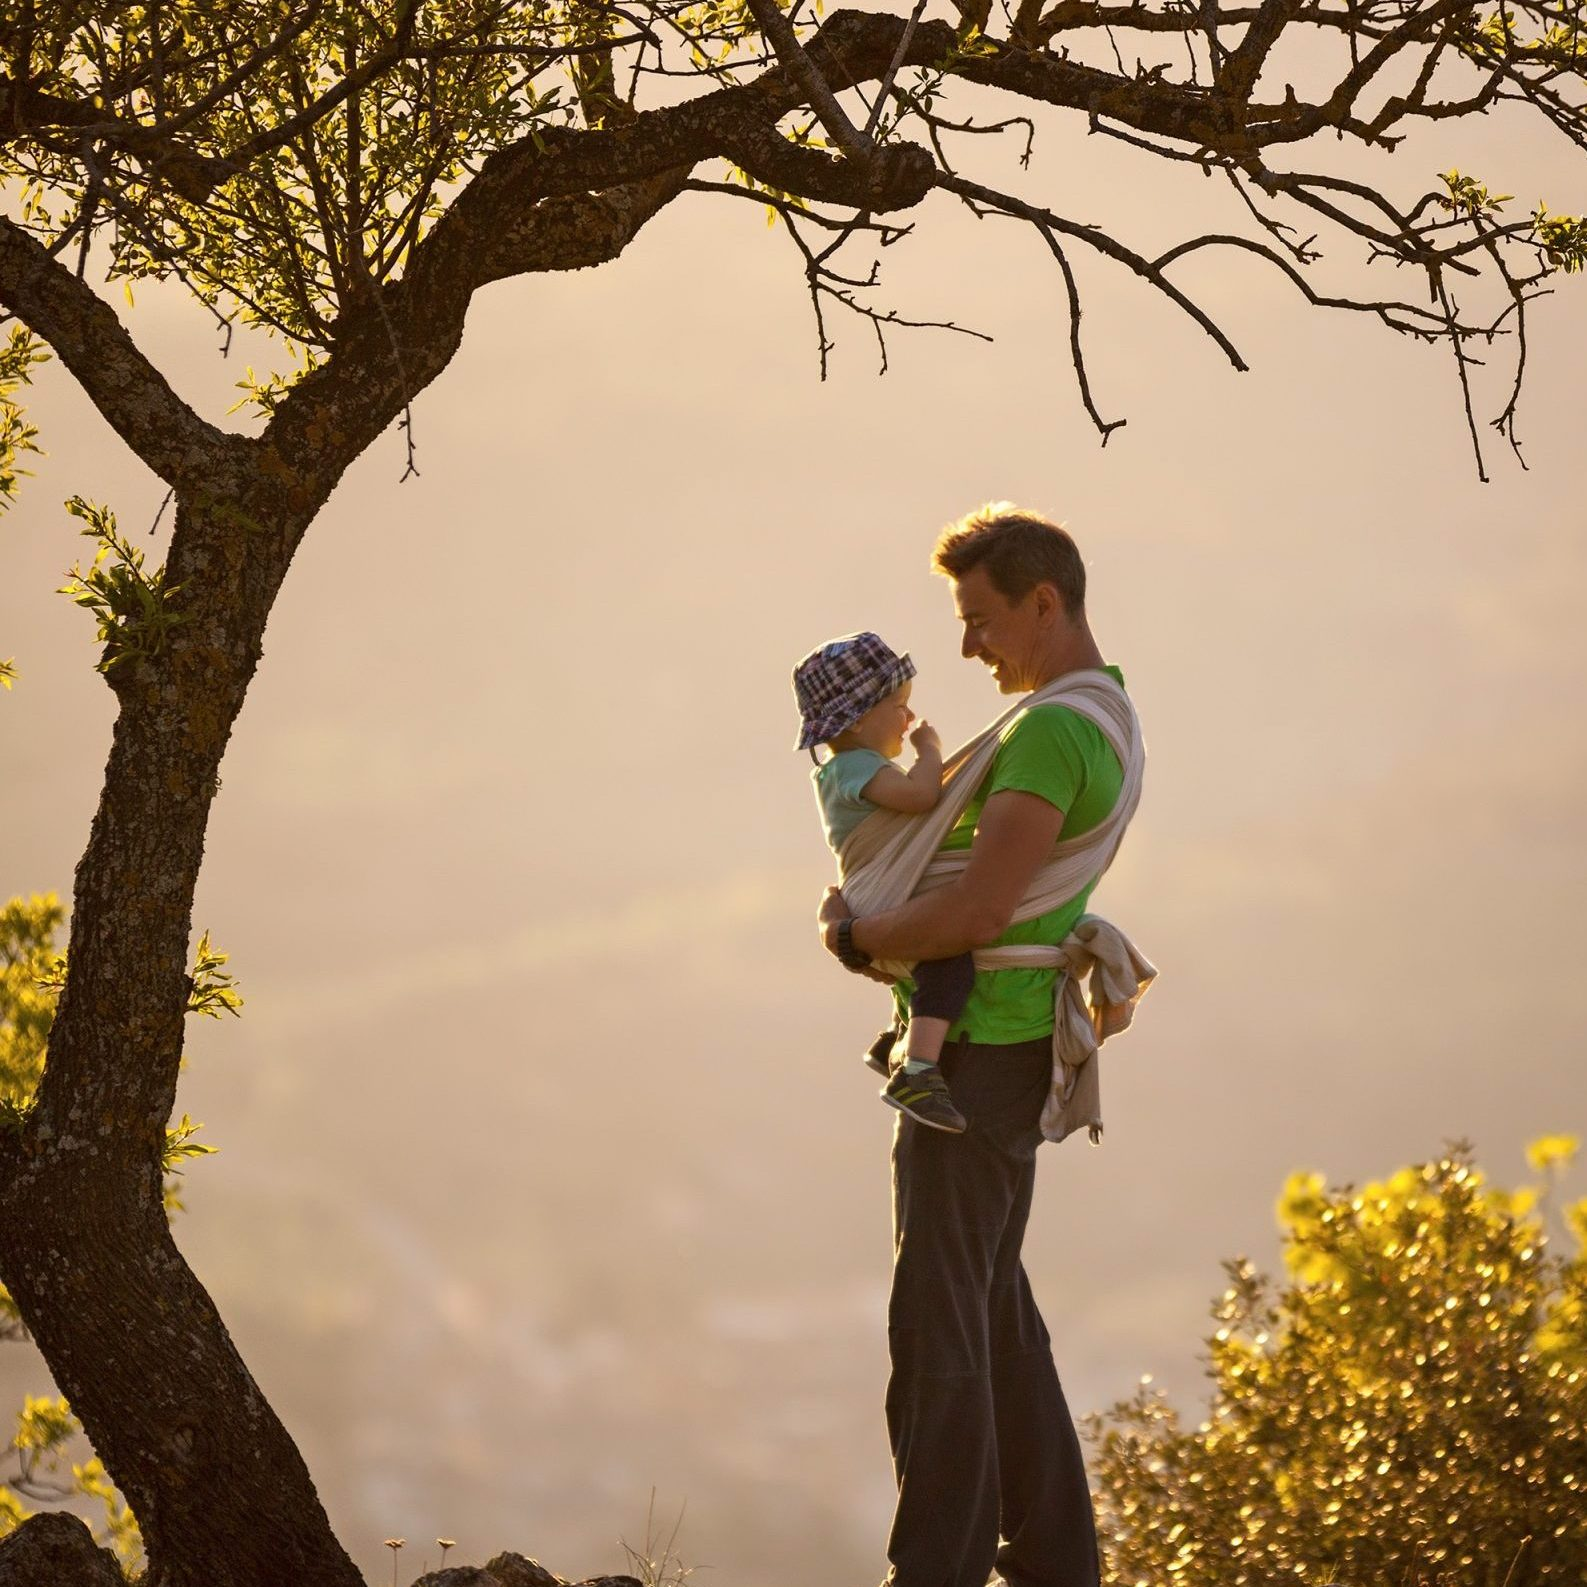 Father carrying his son in sling outdoors